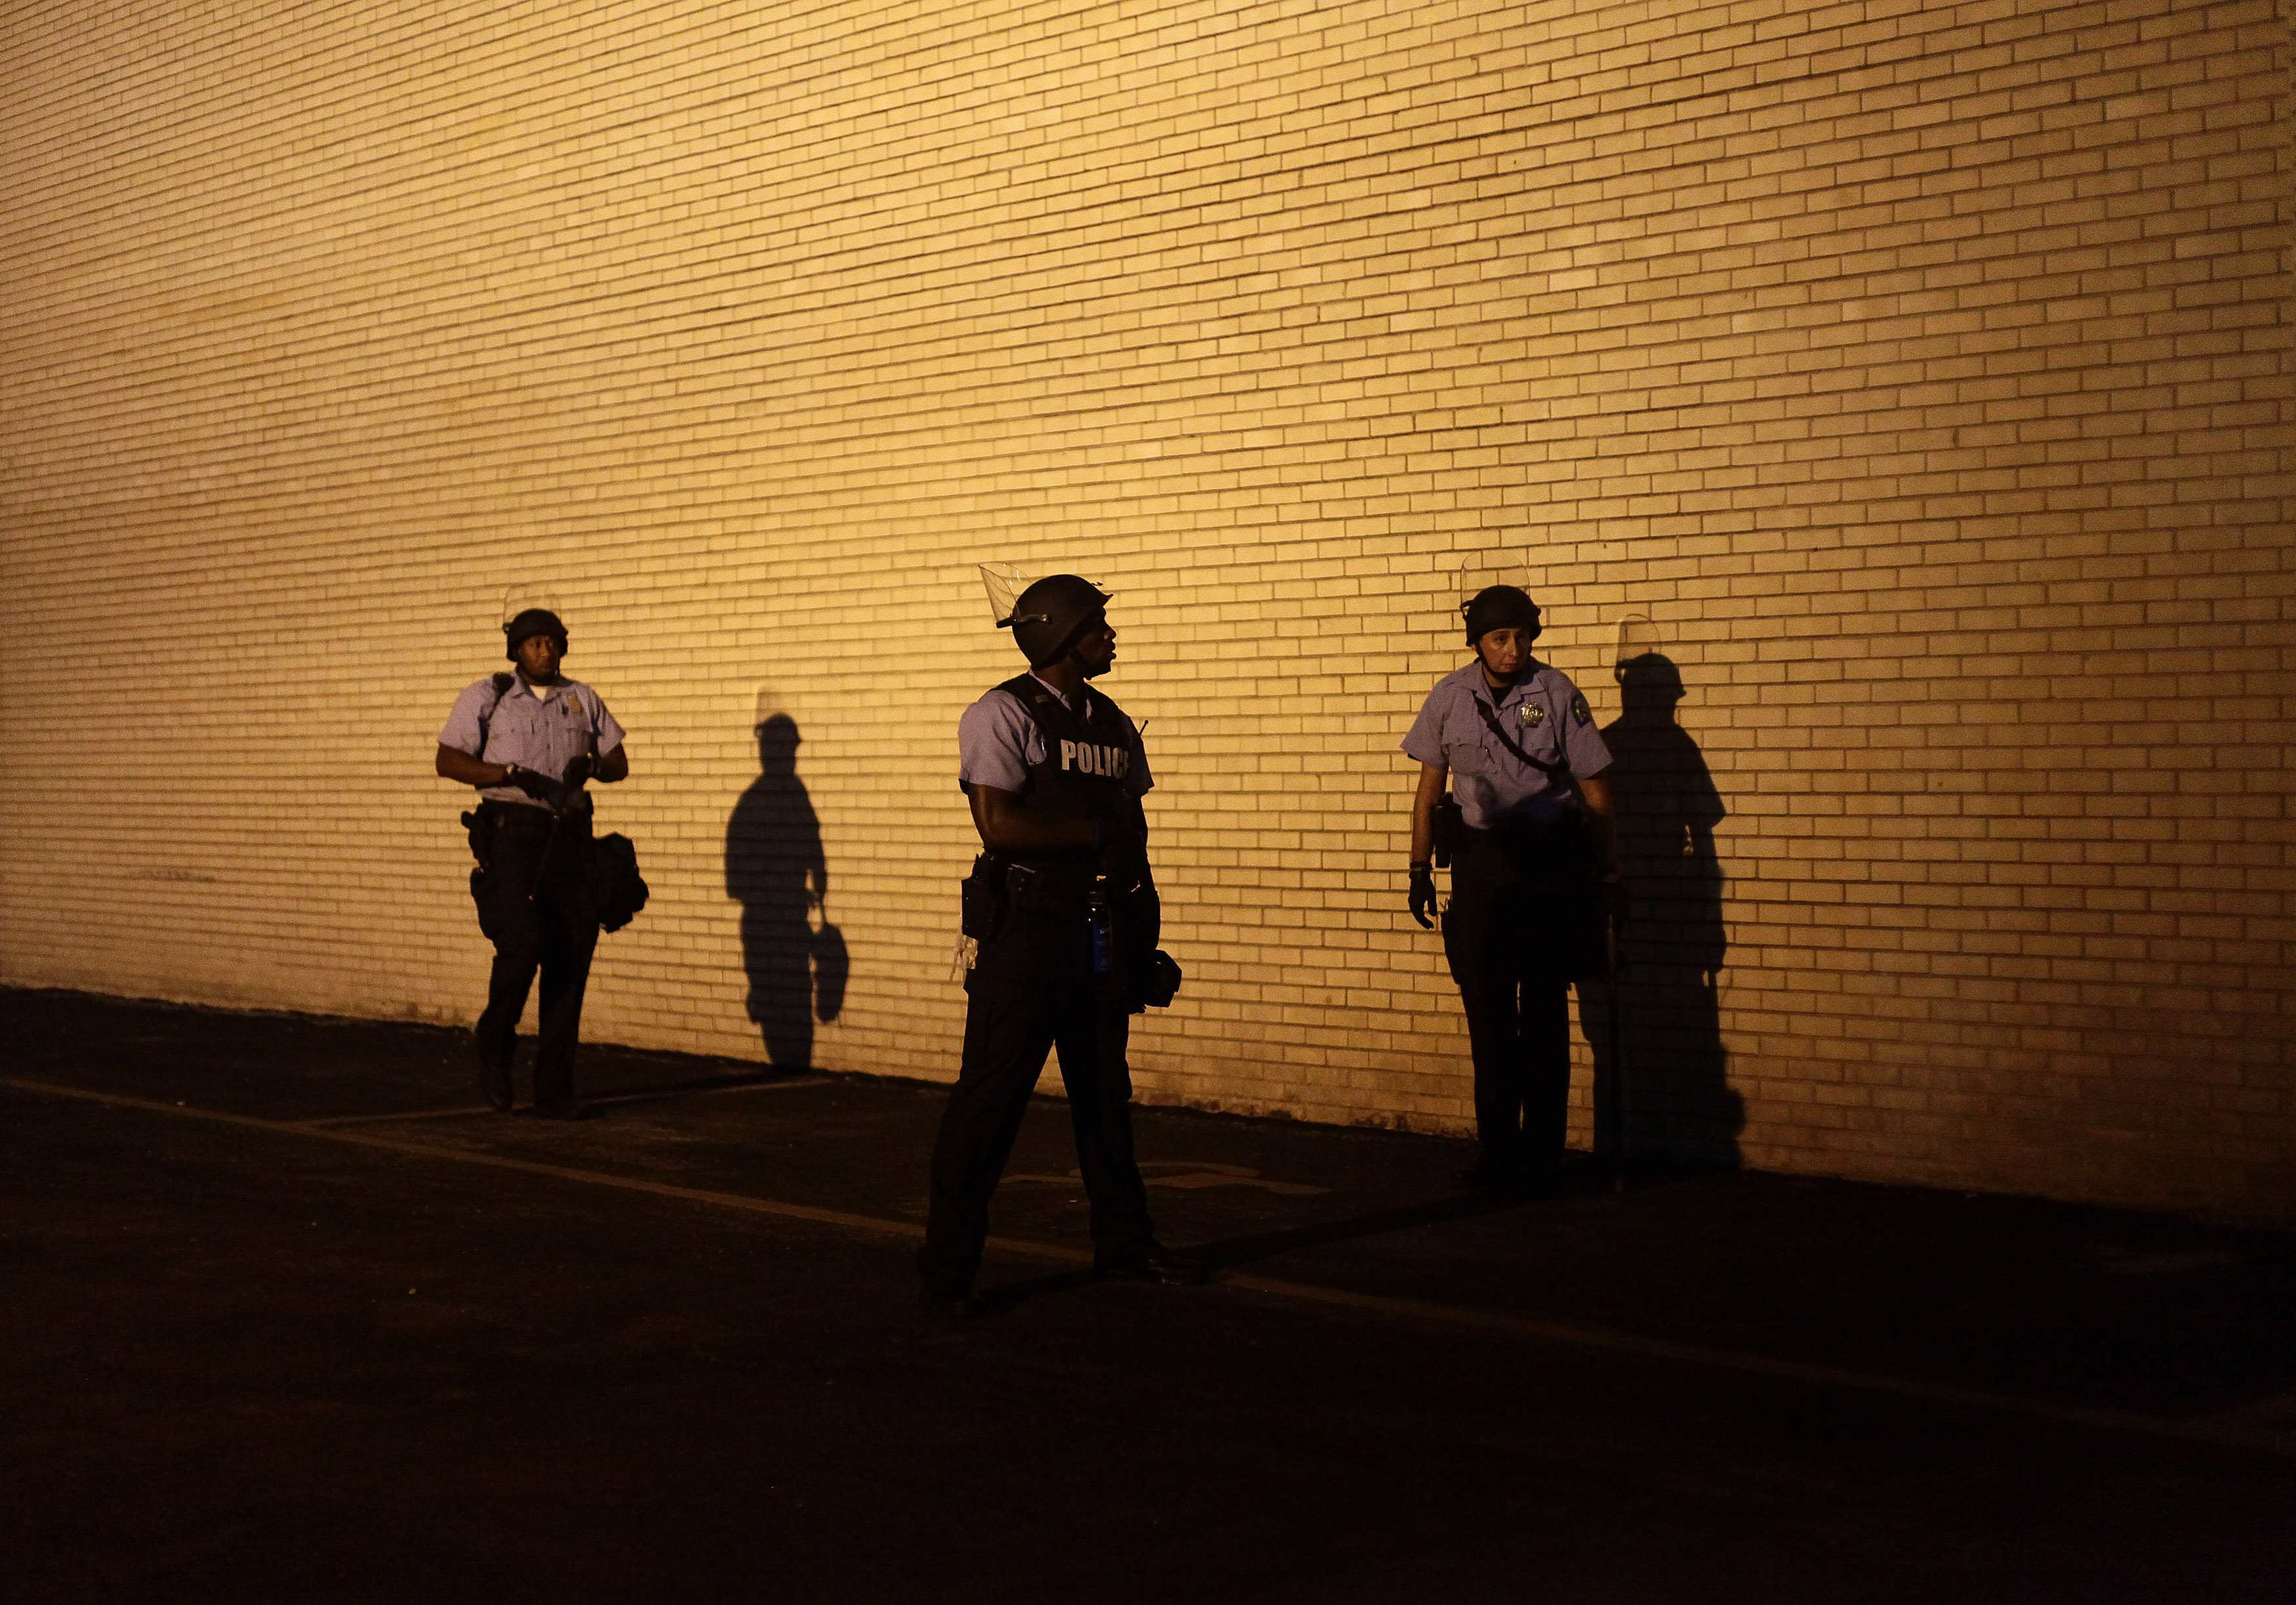 Police officers in riot gear watch demonstrators protesting against the shooting of Michael Brown from the side of a building in Ferguson, Mo. on Aug. 19, 2014.